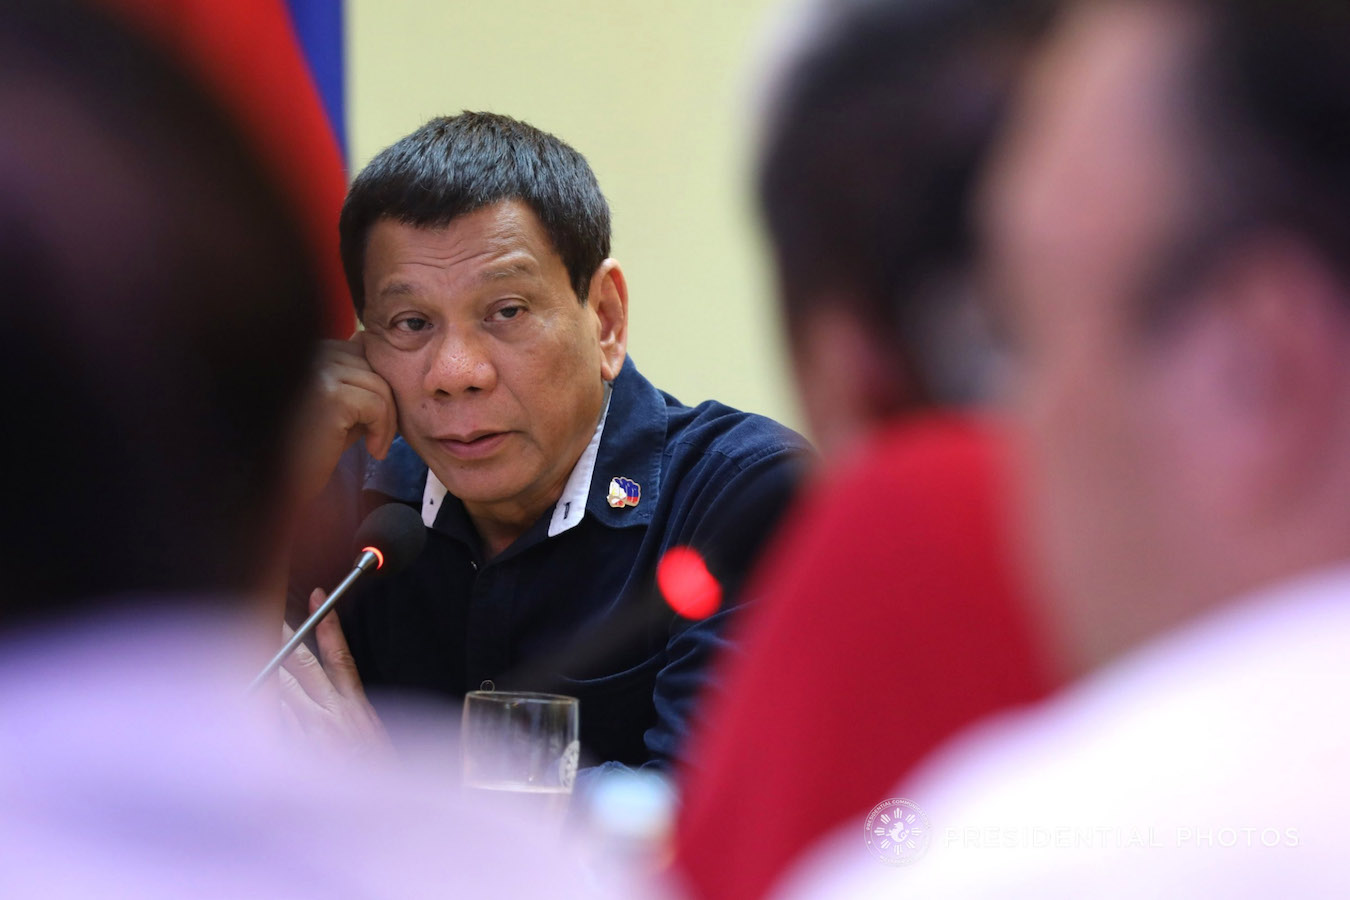 President Rodrigo Roa Duterte convenes with some members of his cabinet and local government officials to discuss the extent of the Typhoon Urduja's damage as well as the response and relief efforts on the typhoon-stricken areas at the Naval State University in Naval, Biliran Province on December 18, 2017. ROBINSON NIÑAL JR./PRESIDENTIAL PHOTO